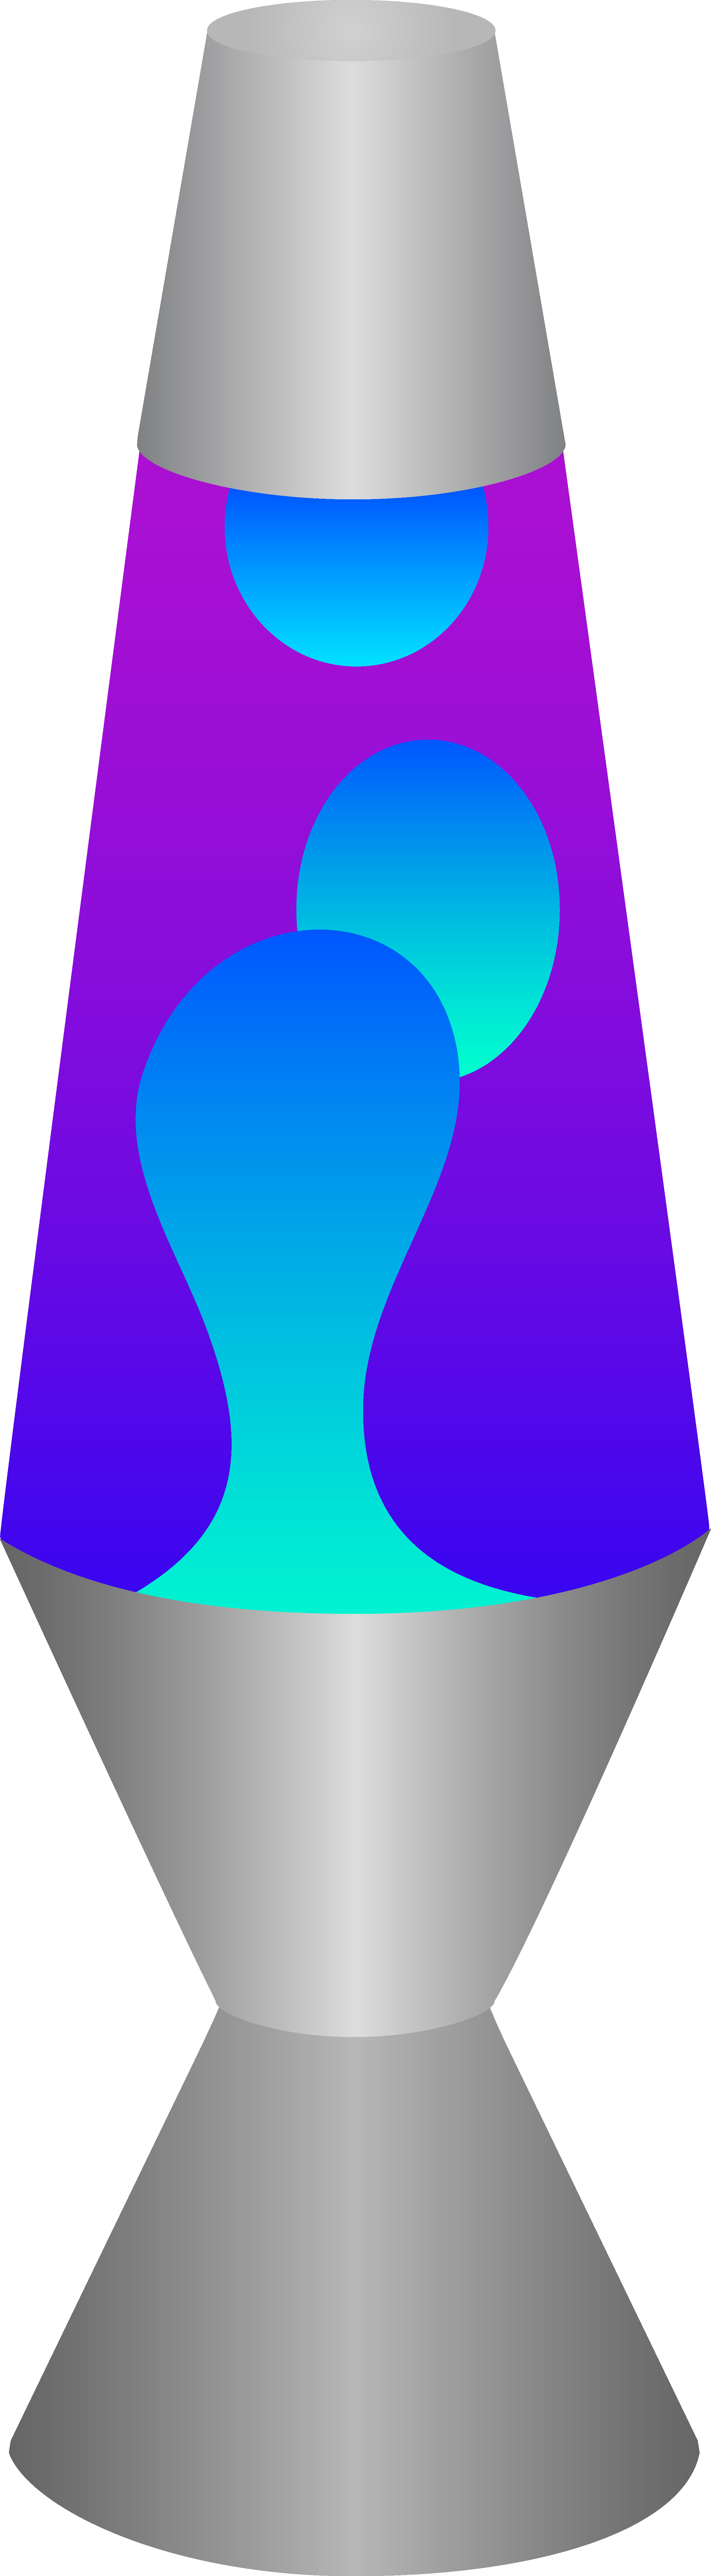 jpg transparent library Lava lamp clipart